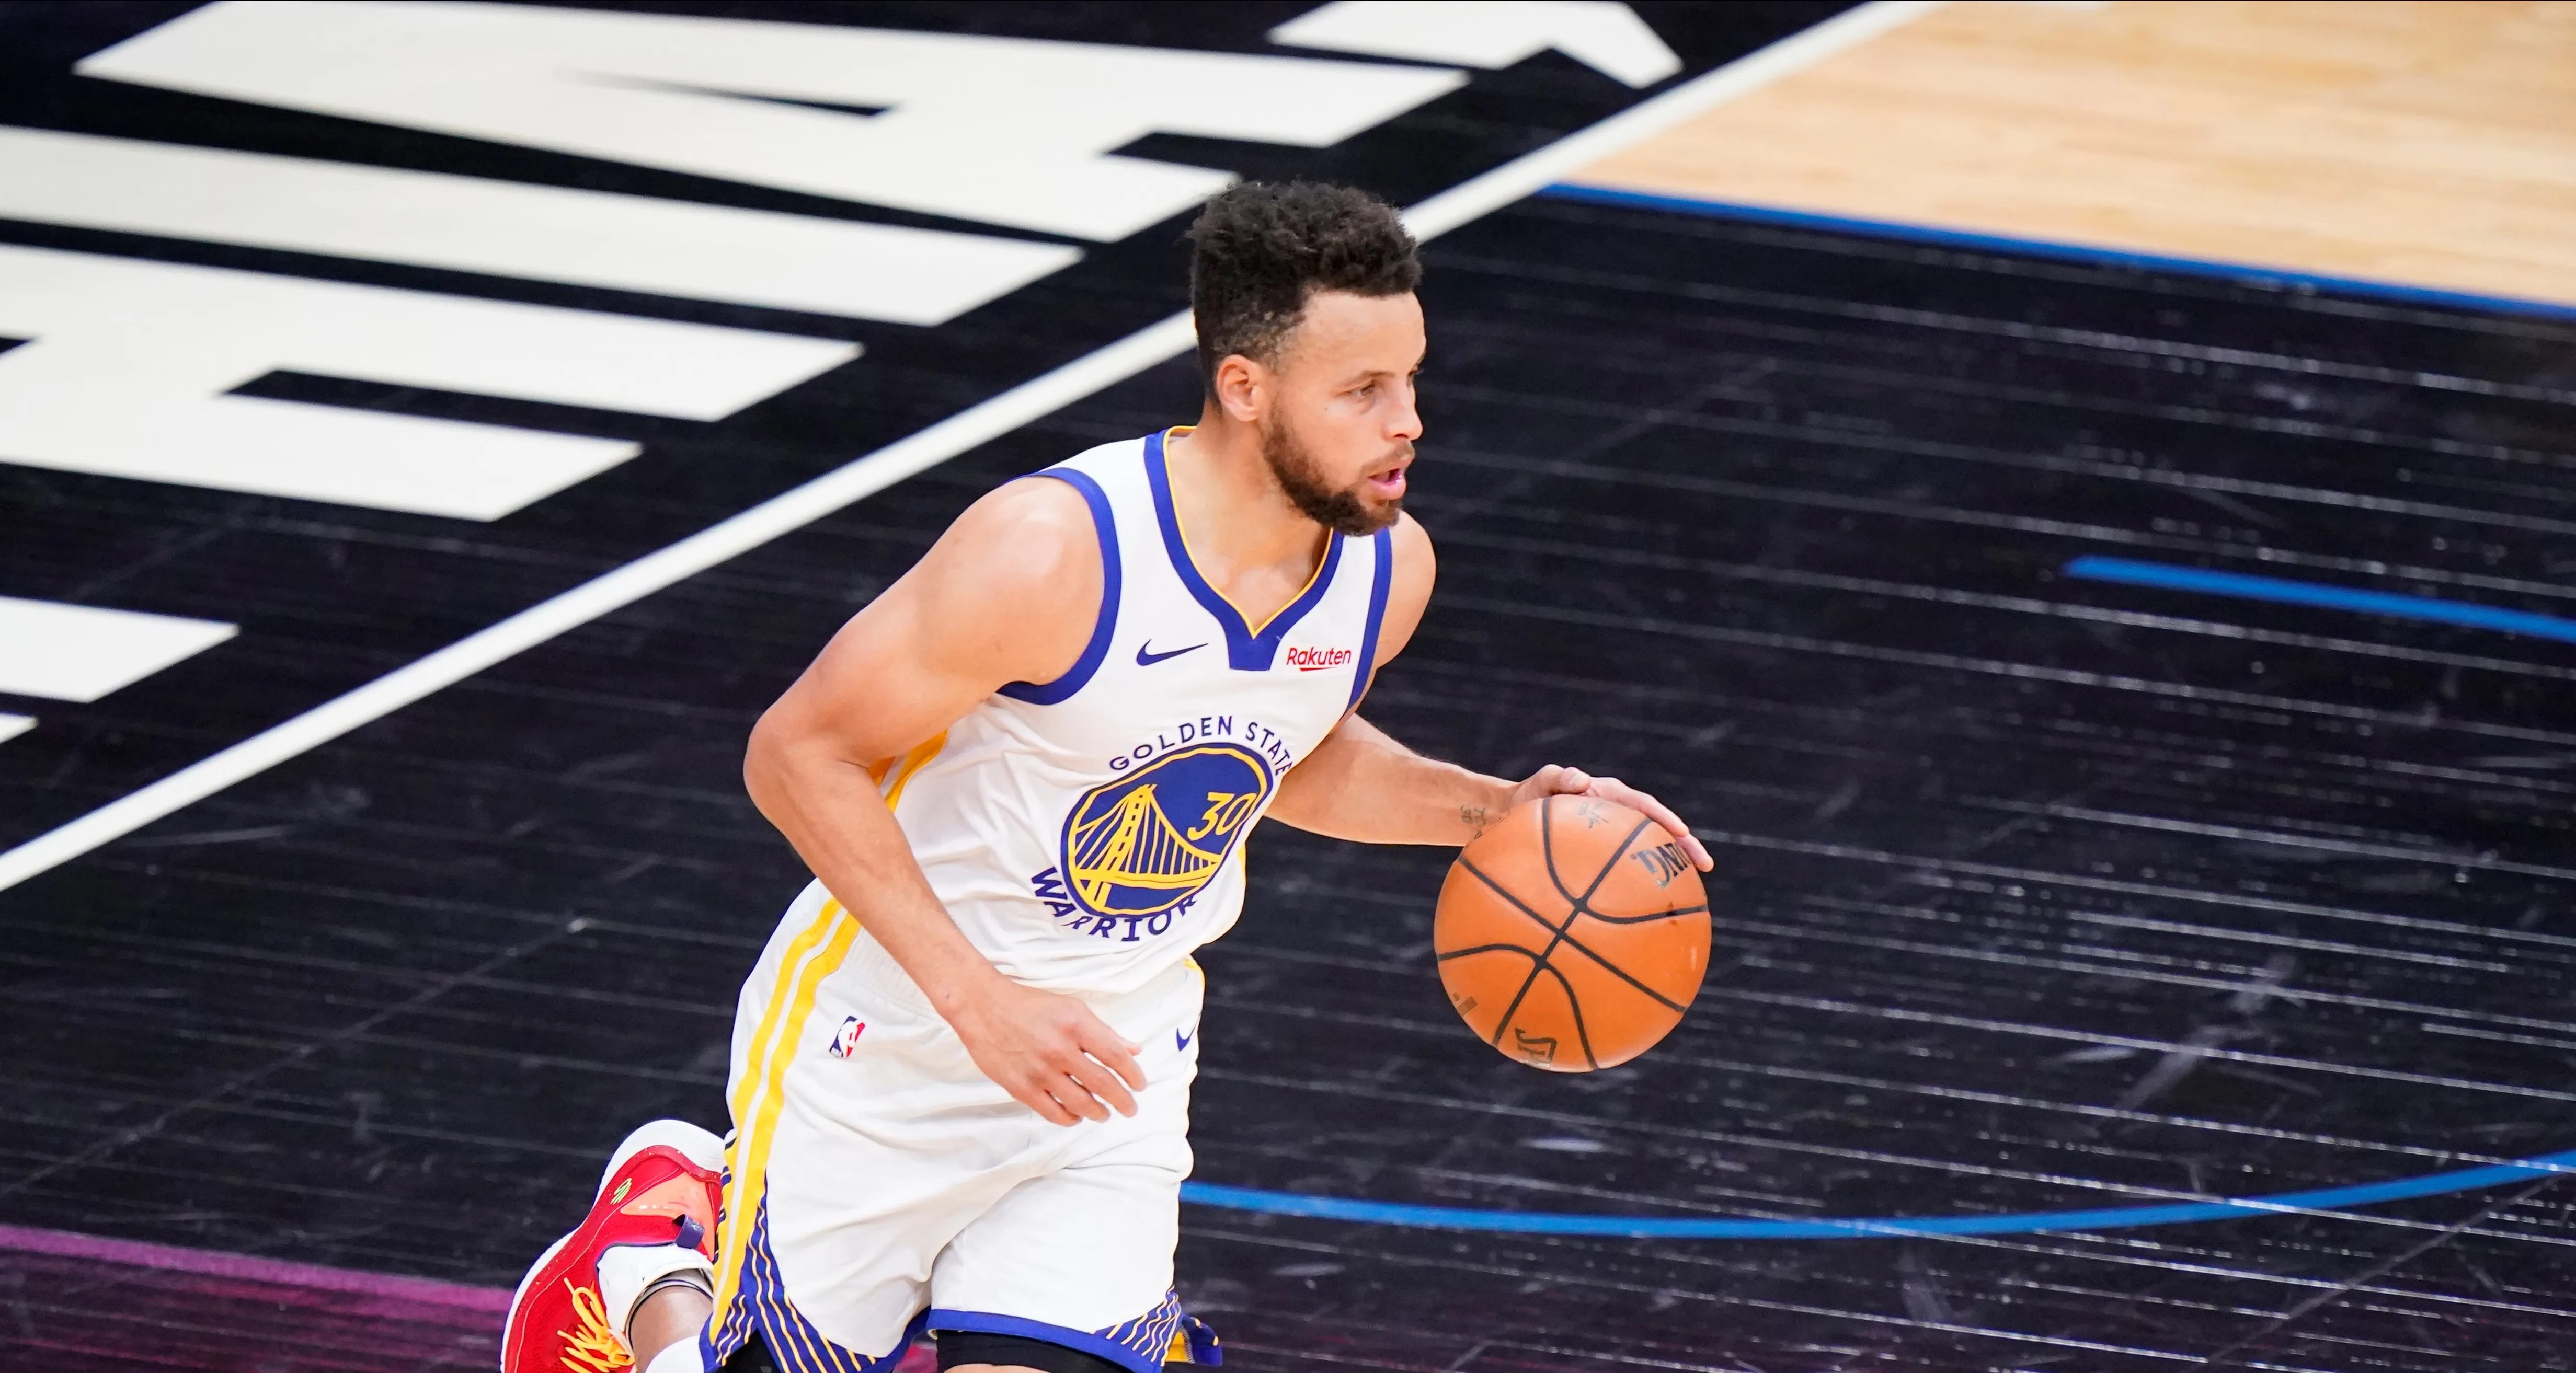 Steph Curry stats: Warriors star's historic run and career in 6 charts